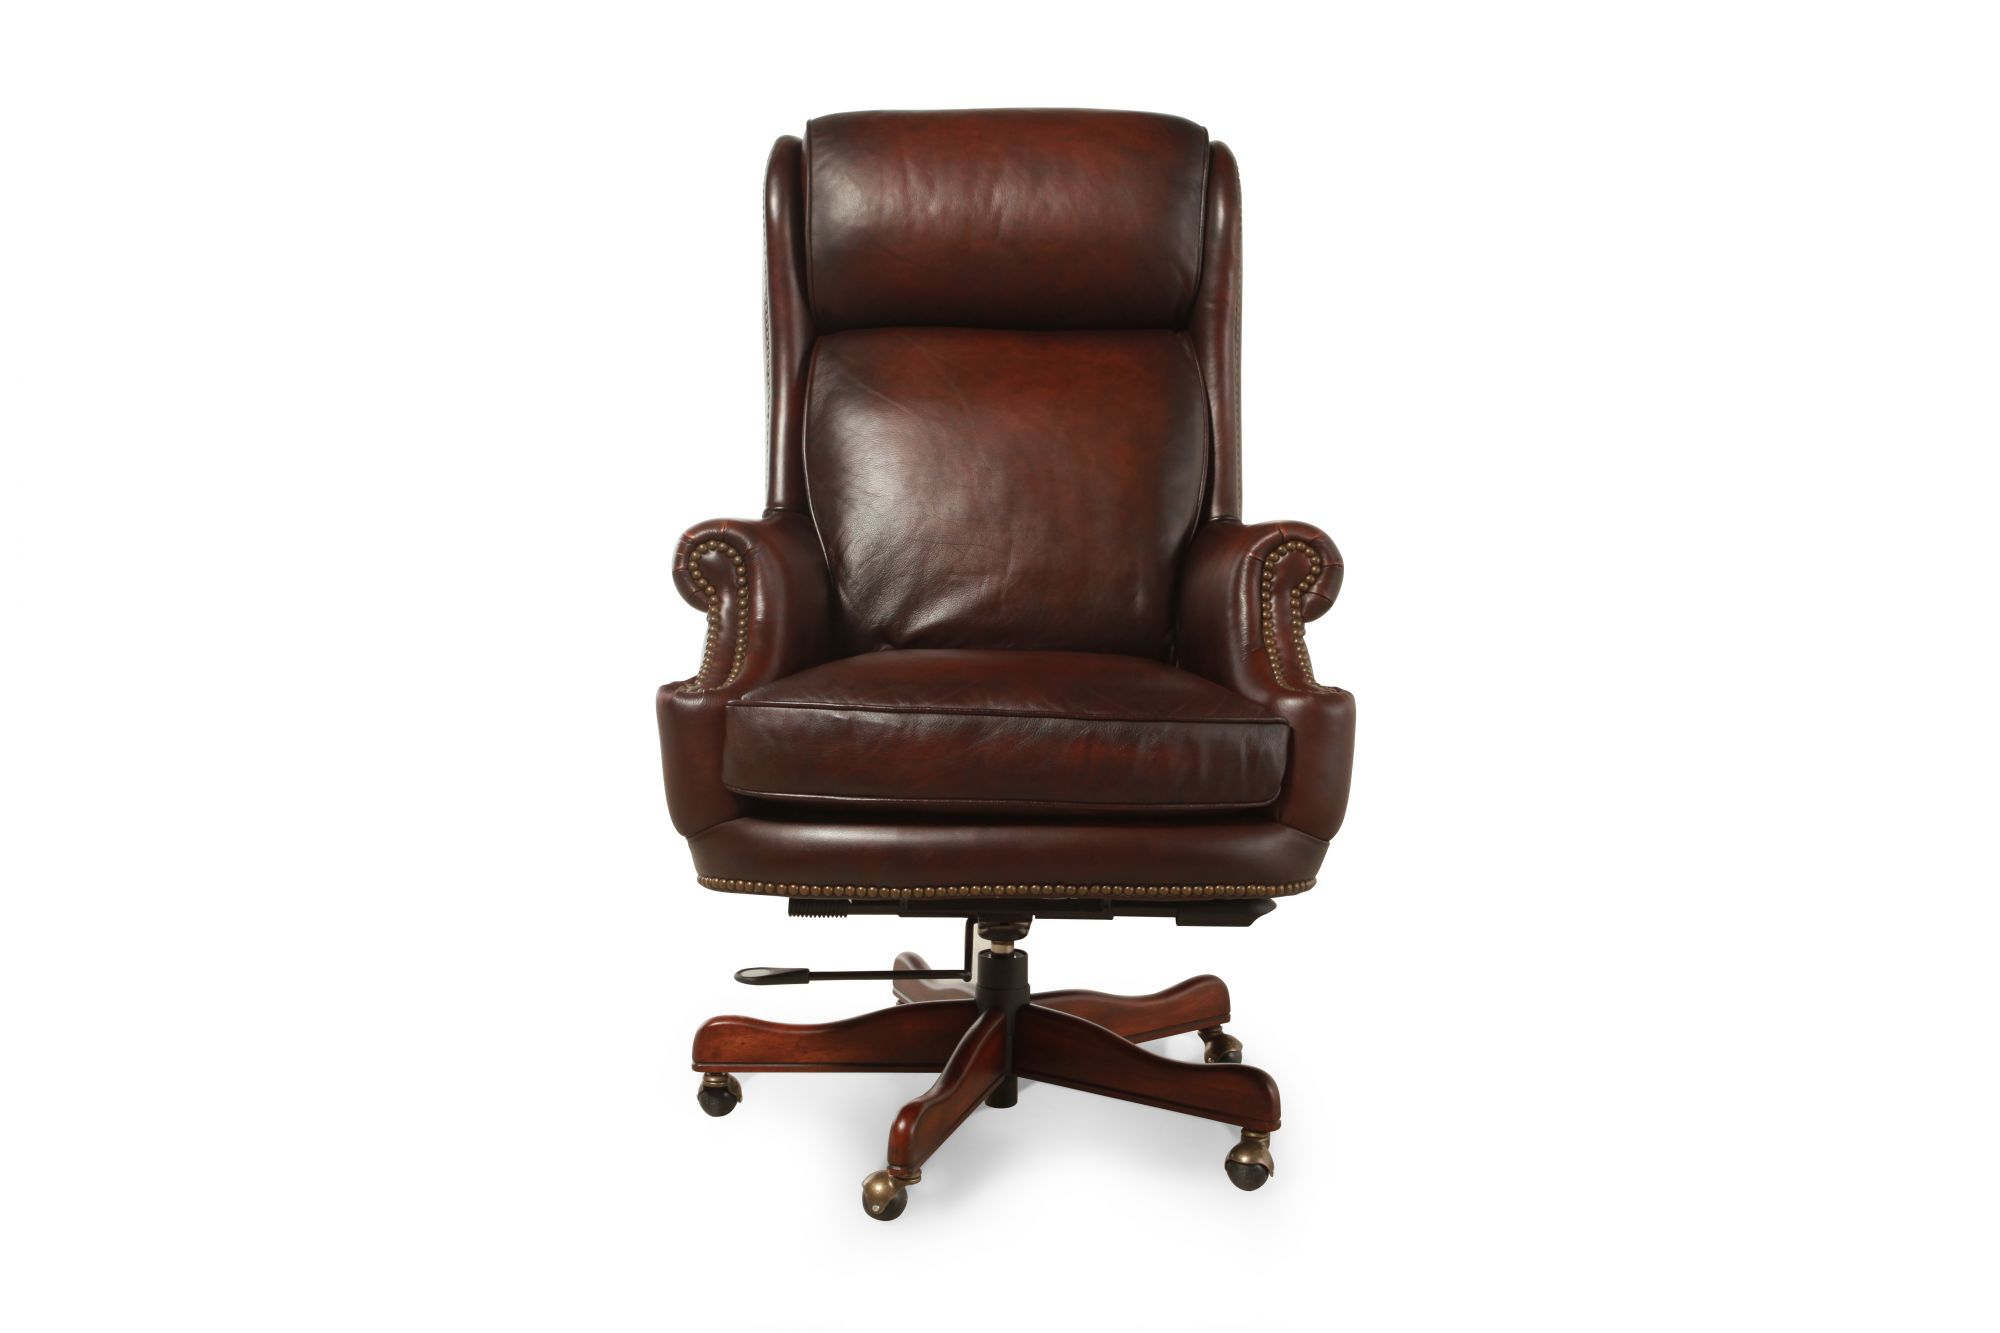 Images Leather Ergonomic Executive Swivel Tilt Chairu0026nbsp;in Rich Brown  Leather Ergonomic Executive Swivel Tilt Chairu0026nbsp;in Rich Brown